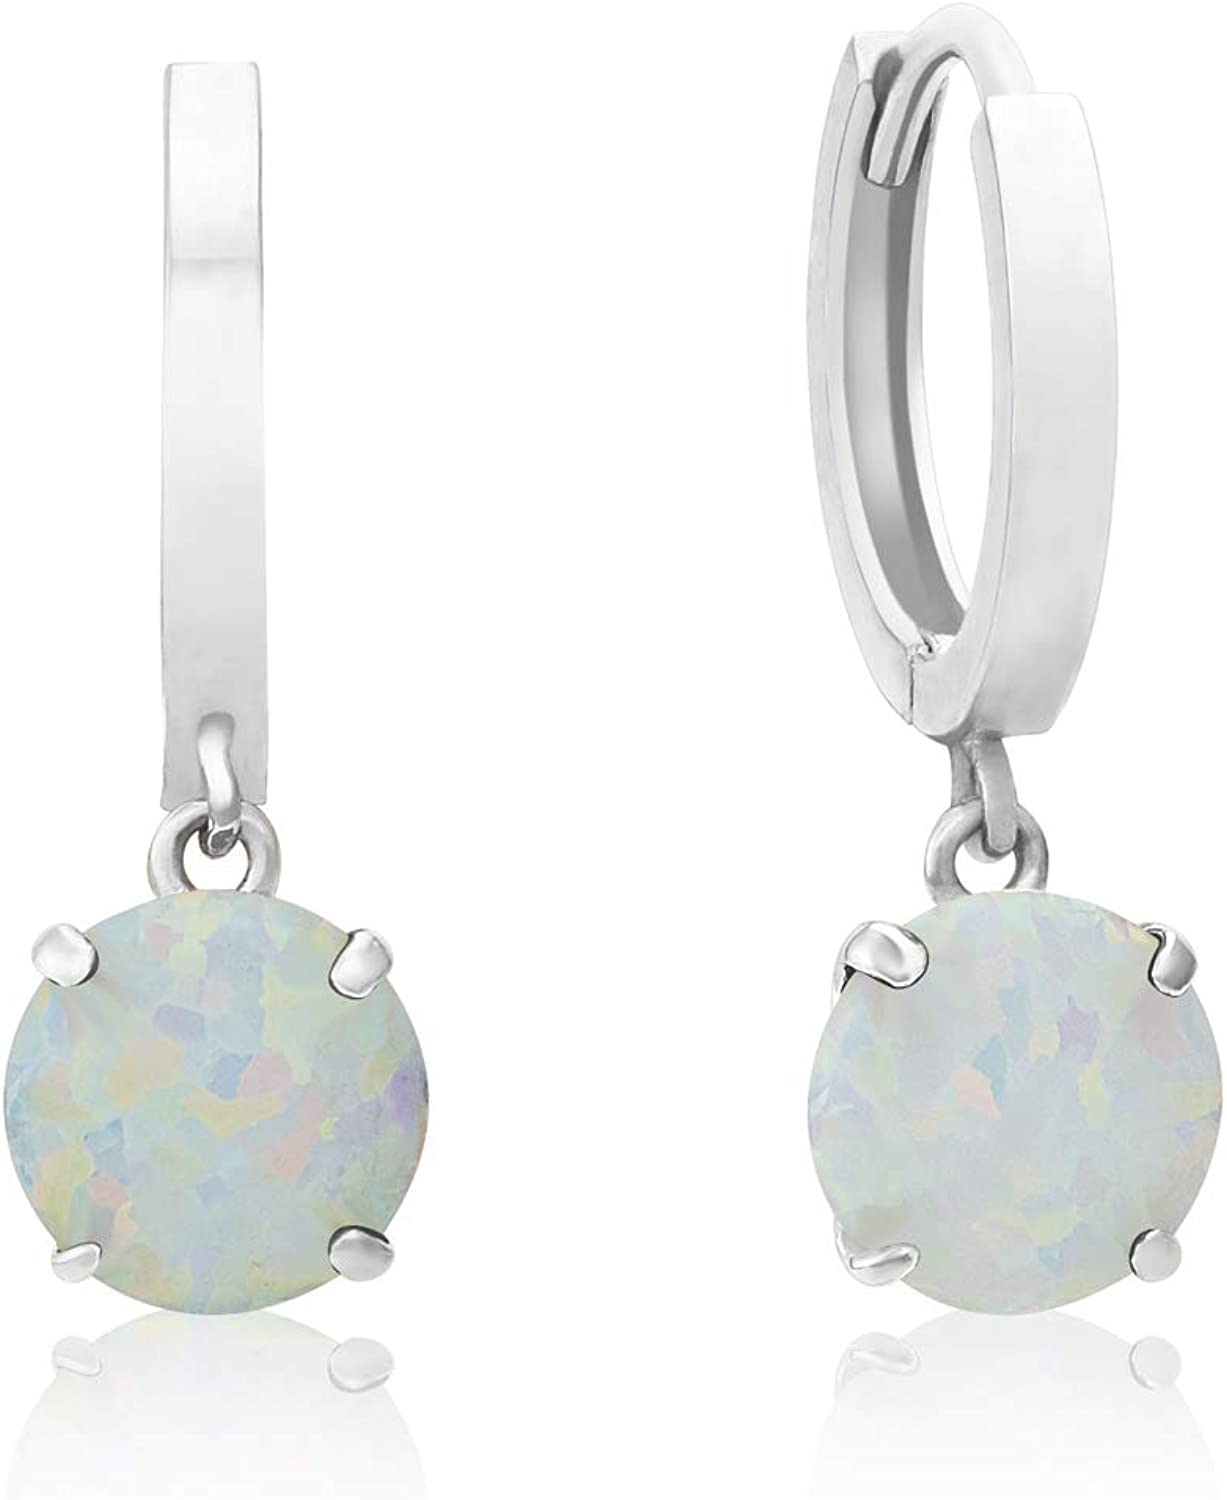 Solid Limited time for free shipping 10K Yellow or White Gold Dangle Huggie Hoop Earrings 6mm Max 76% OFF